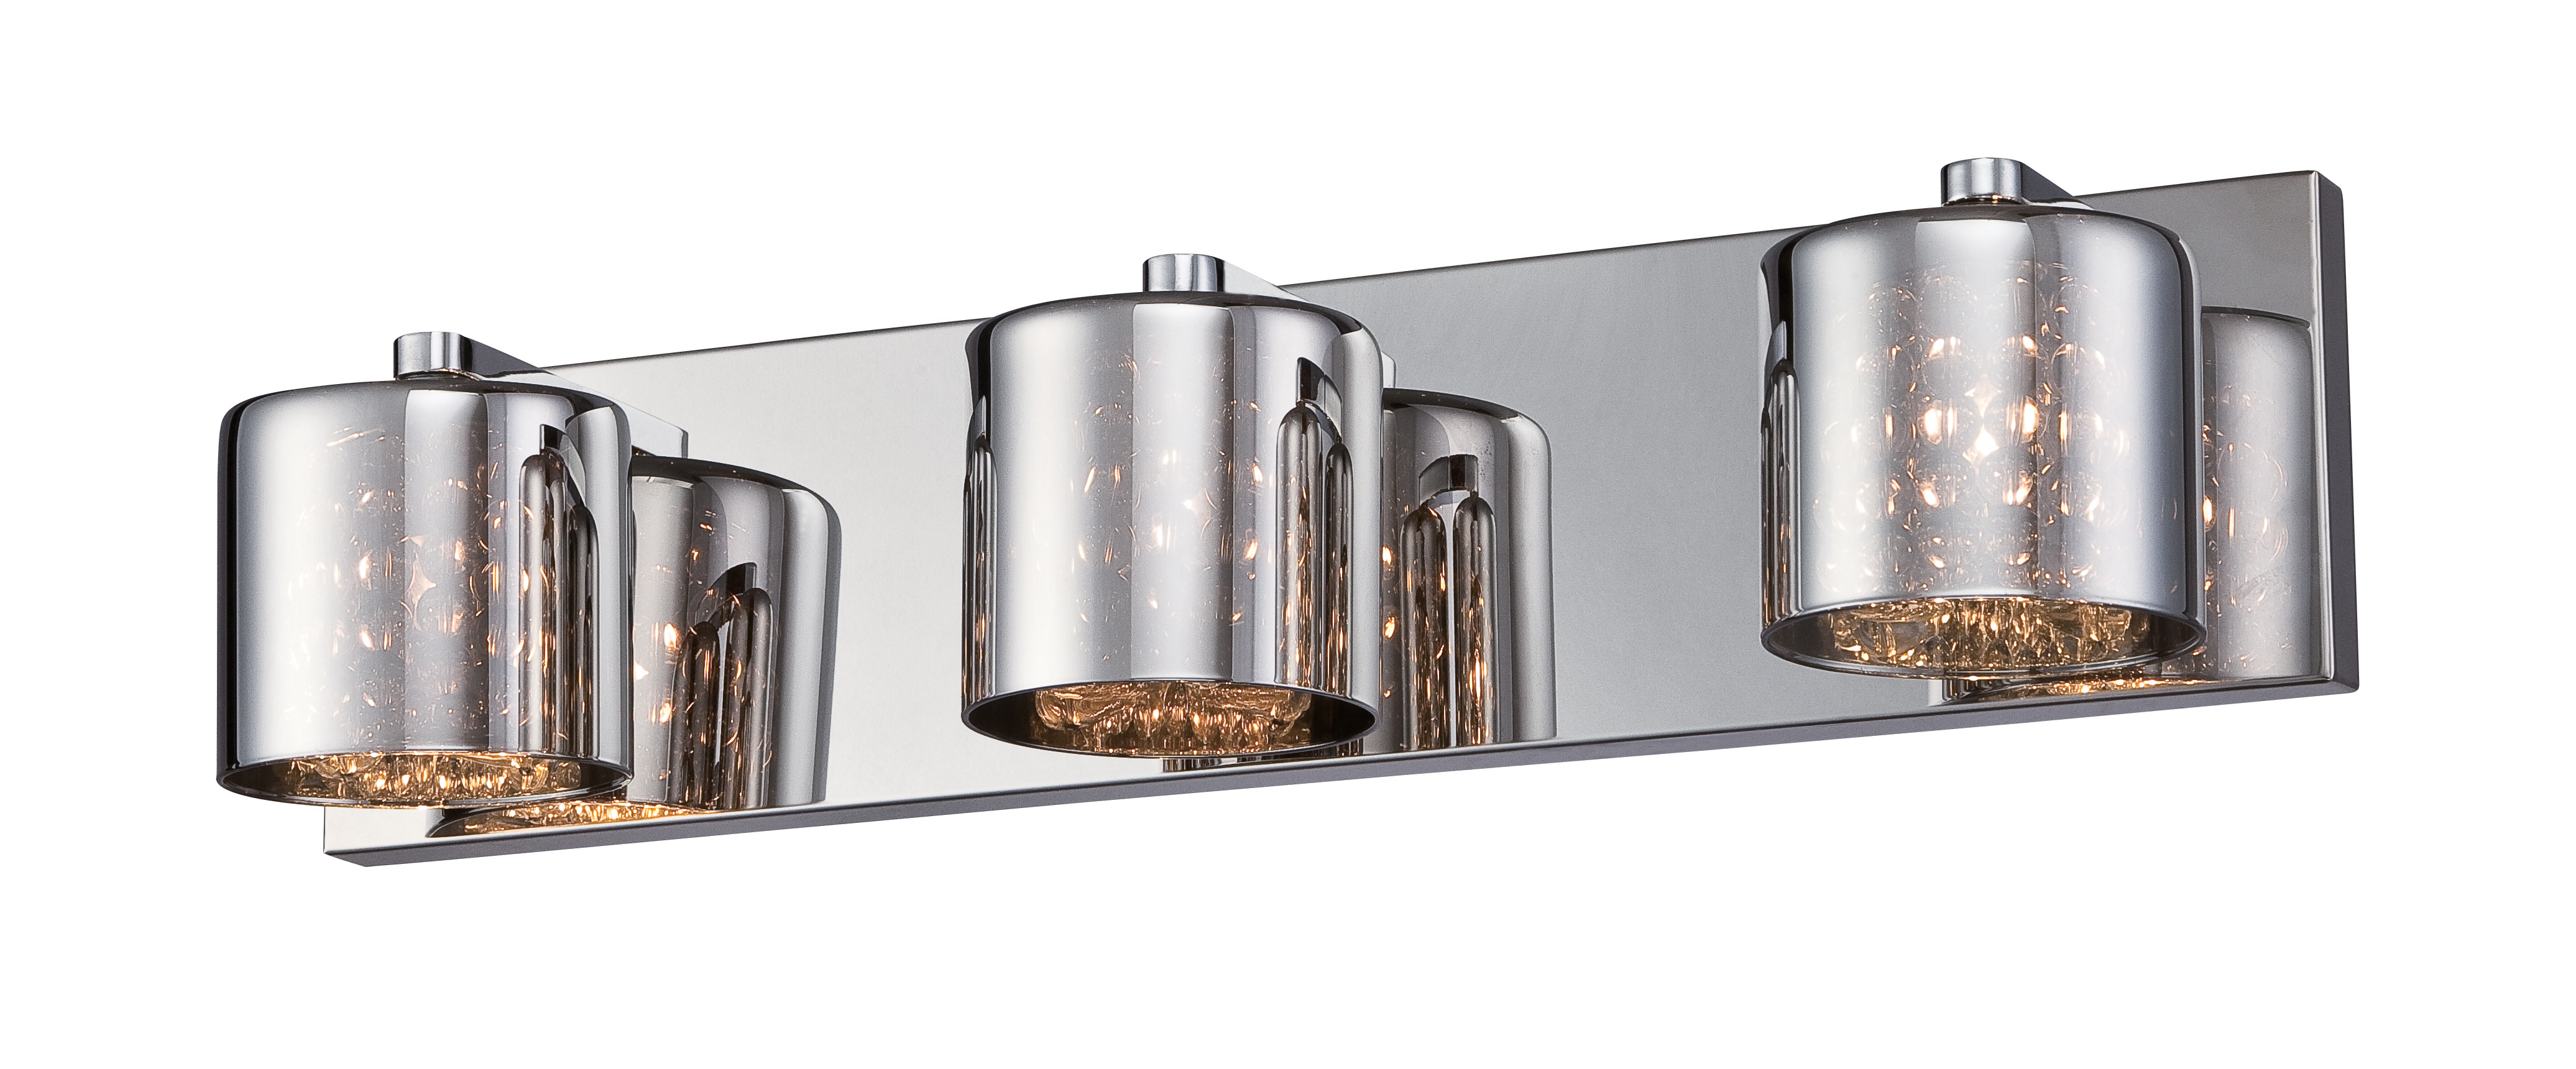 3 light comotti vanity light fixture